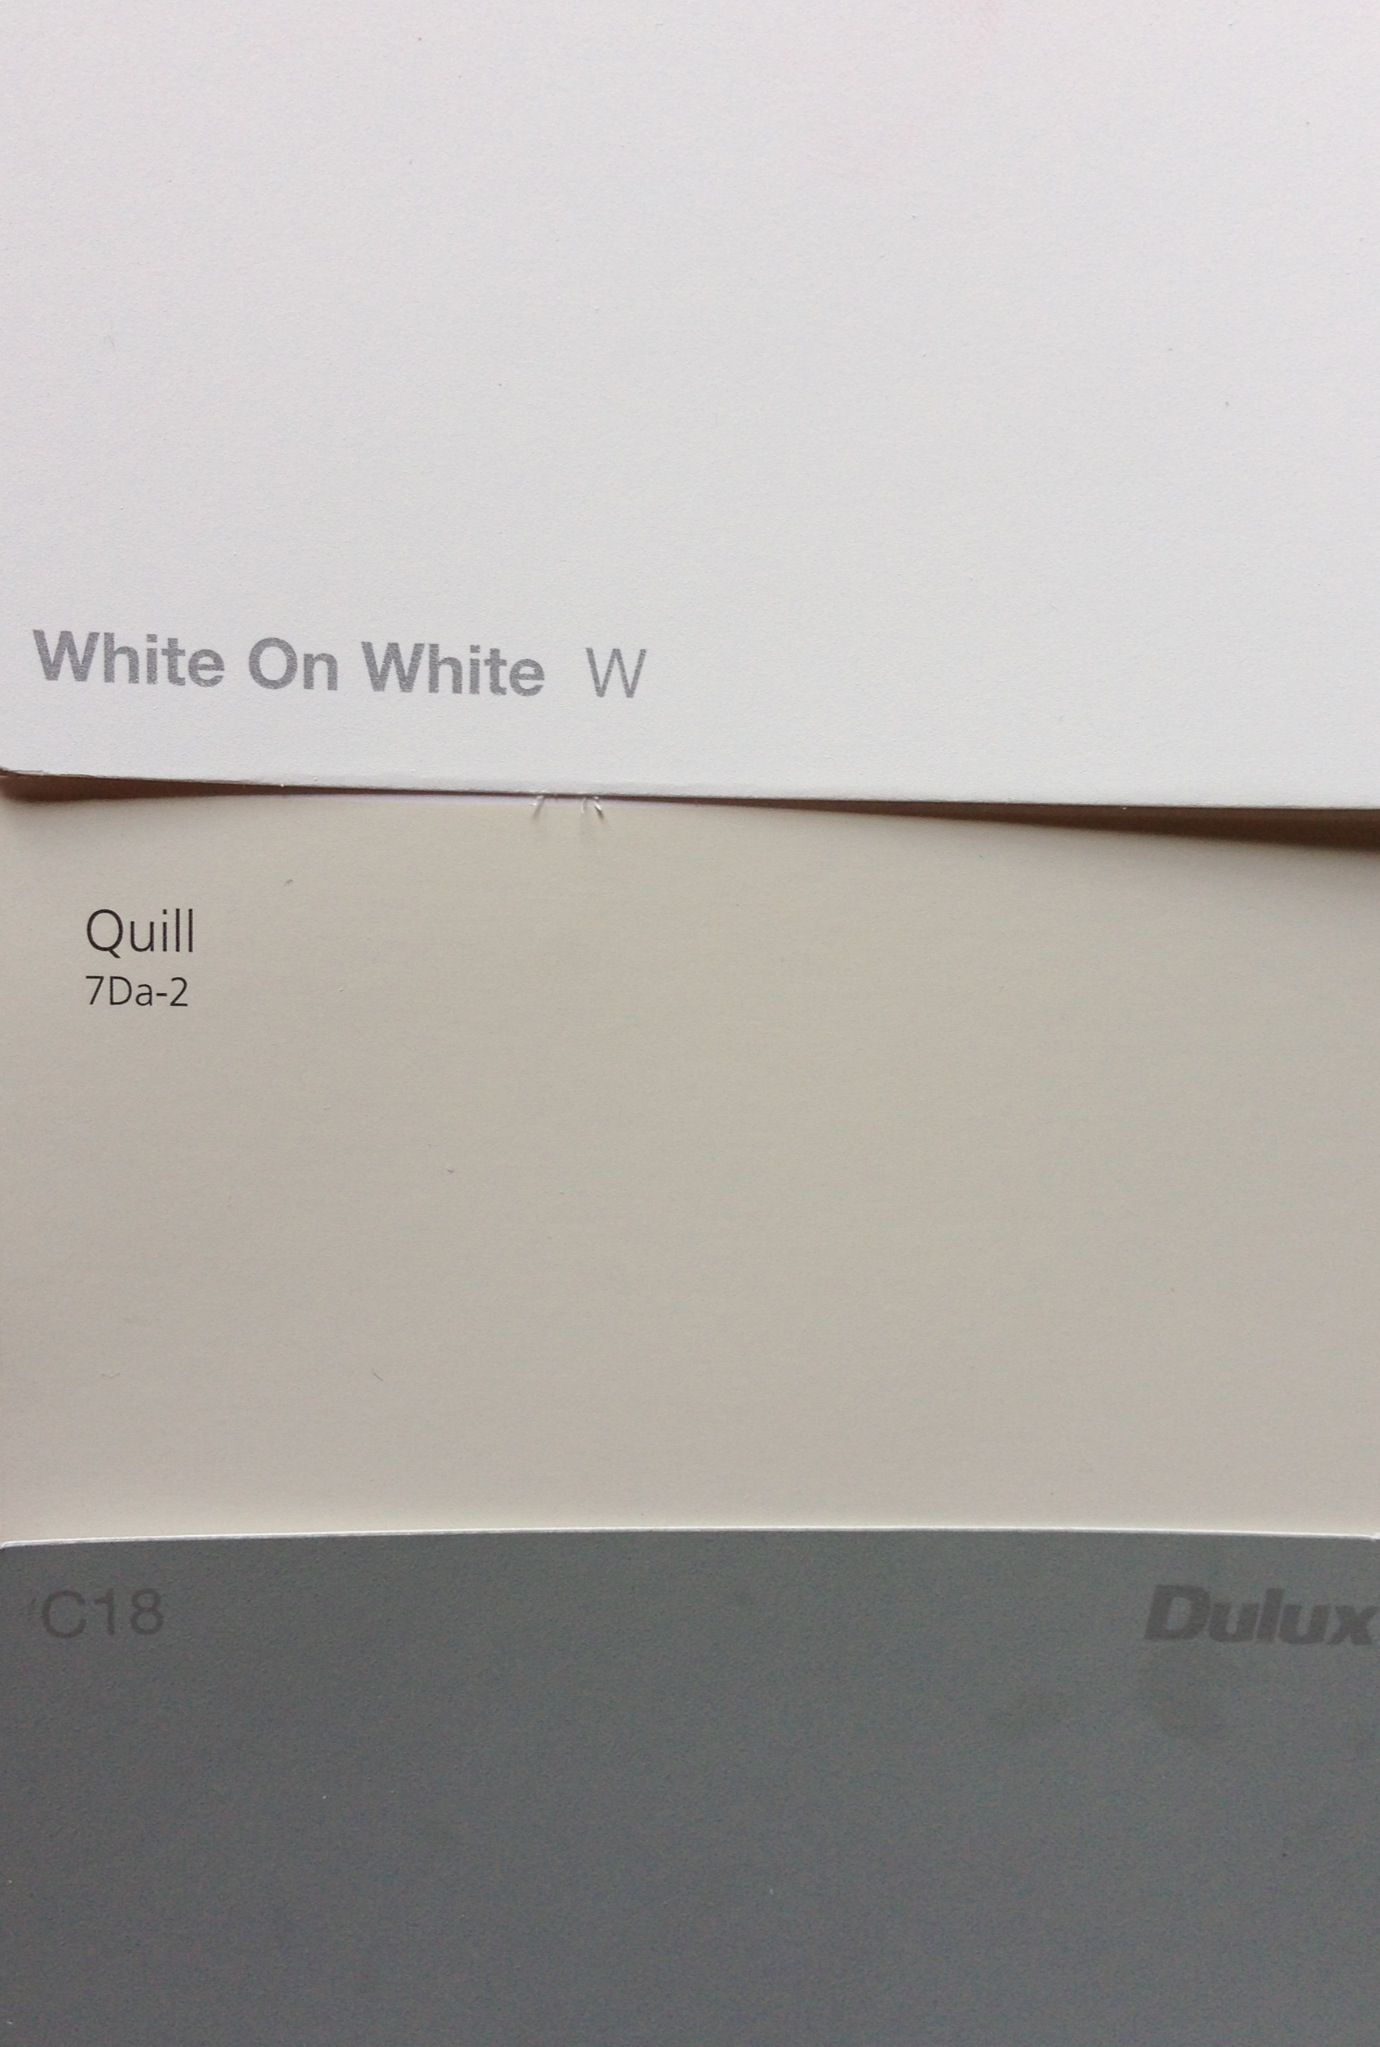 Taubman 39 s quill exterior walls dulux white on white trim colorbond windspray roof future house - Dulux exterior paint colours minimalist ...